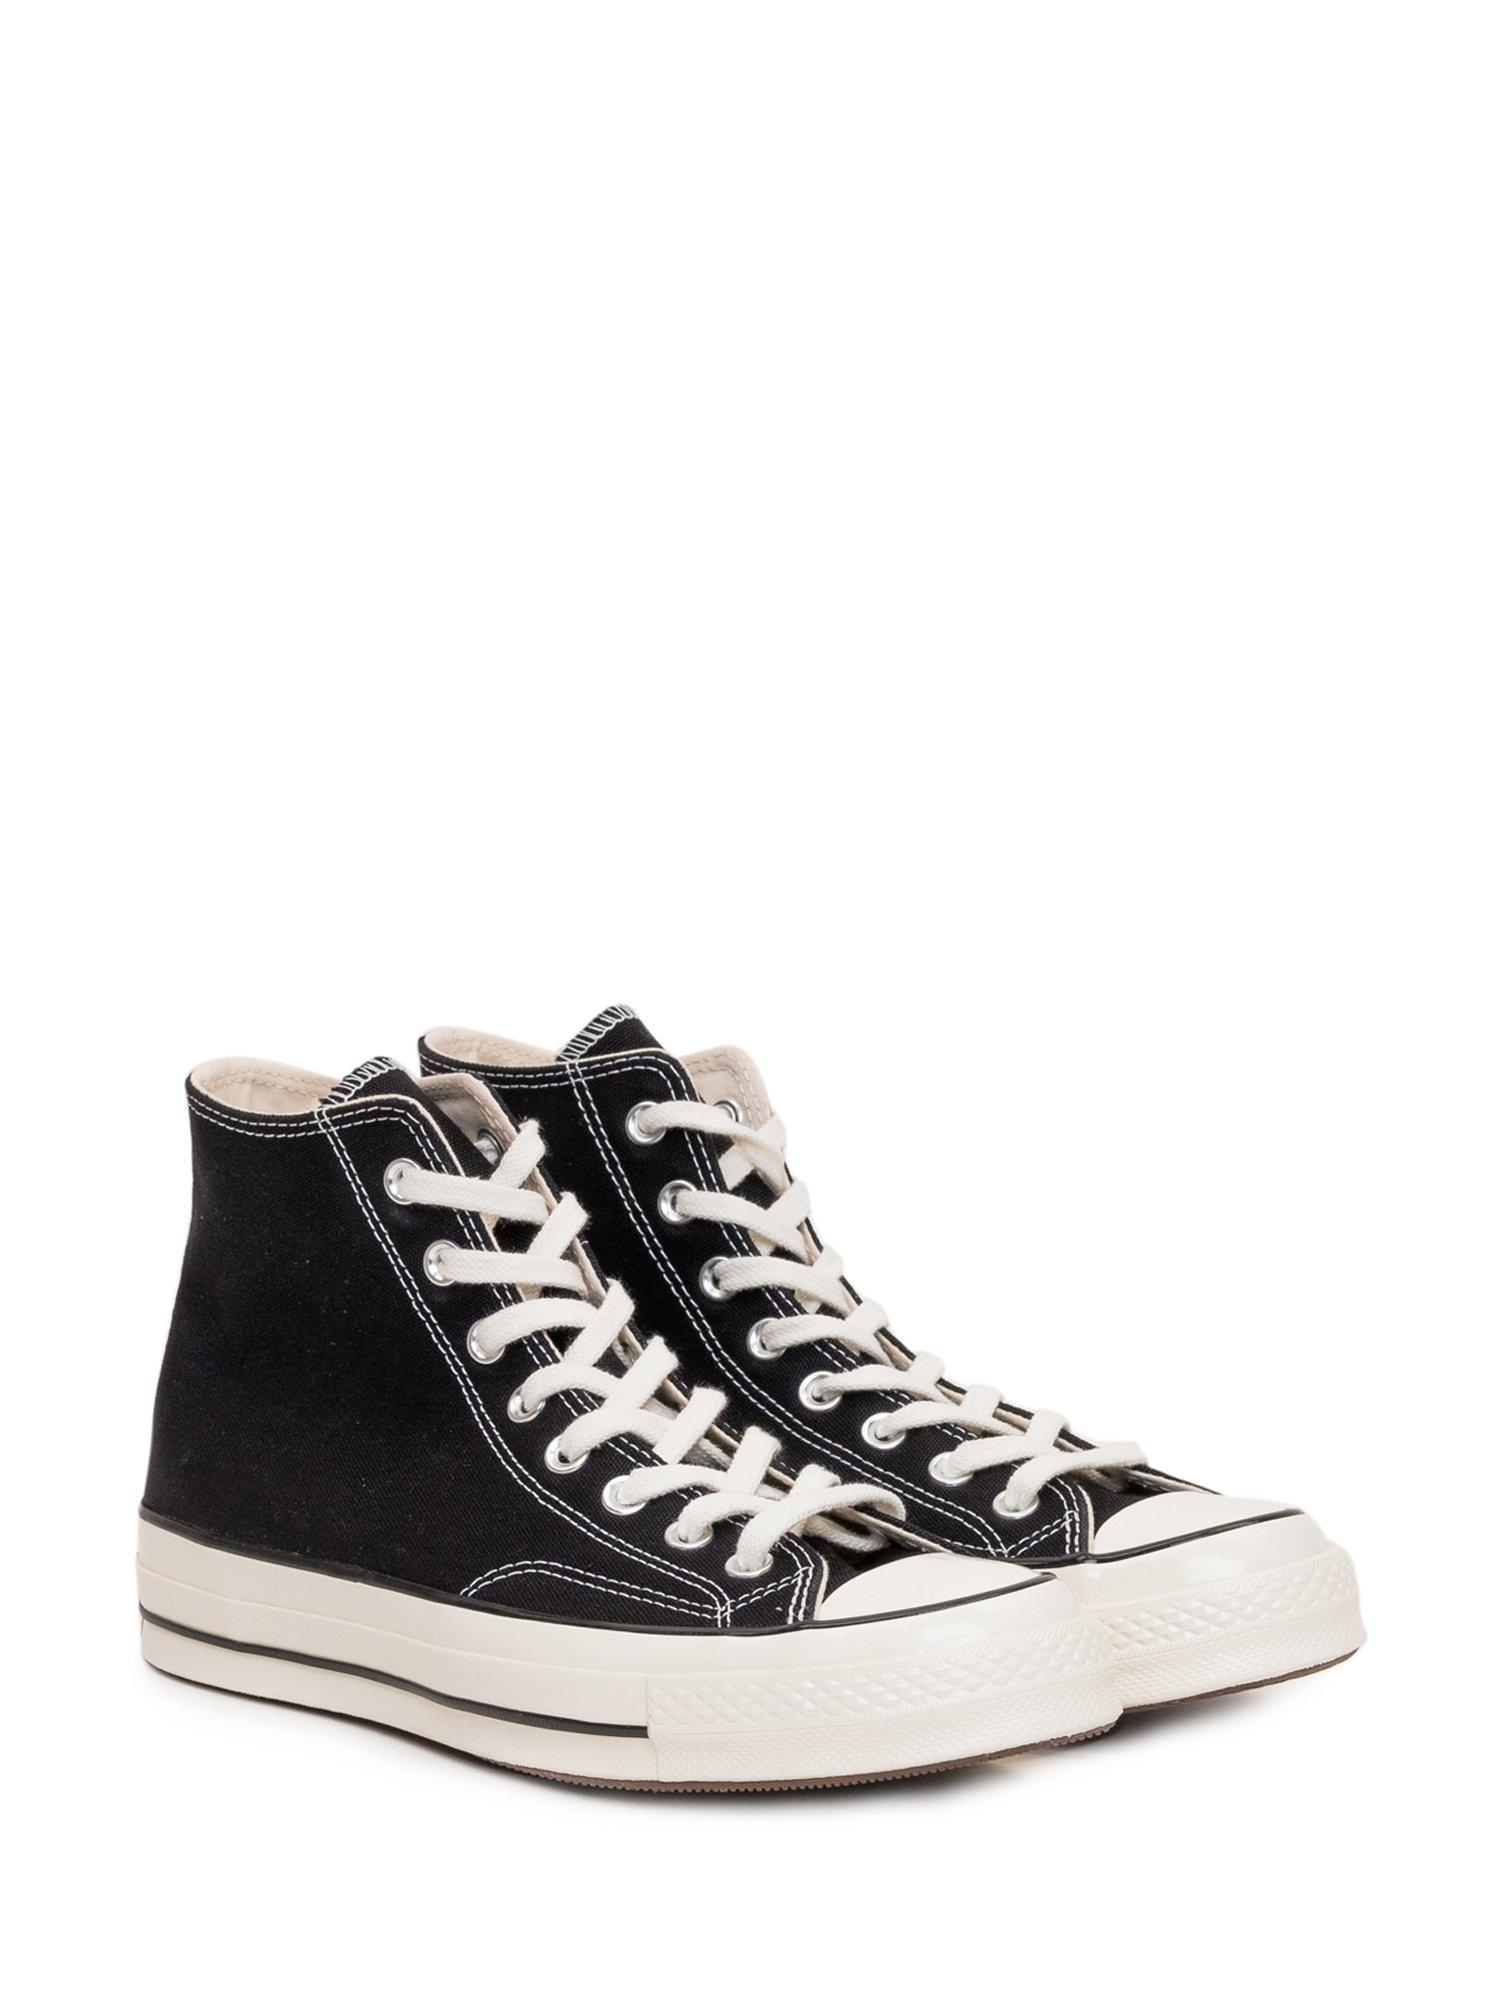 Converse Canvas Chuck 70 Classic High Top Sneakers in Black - Lyst